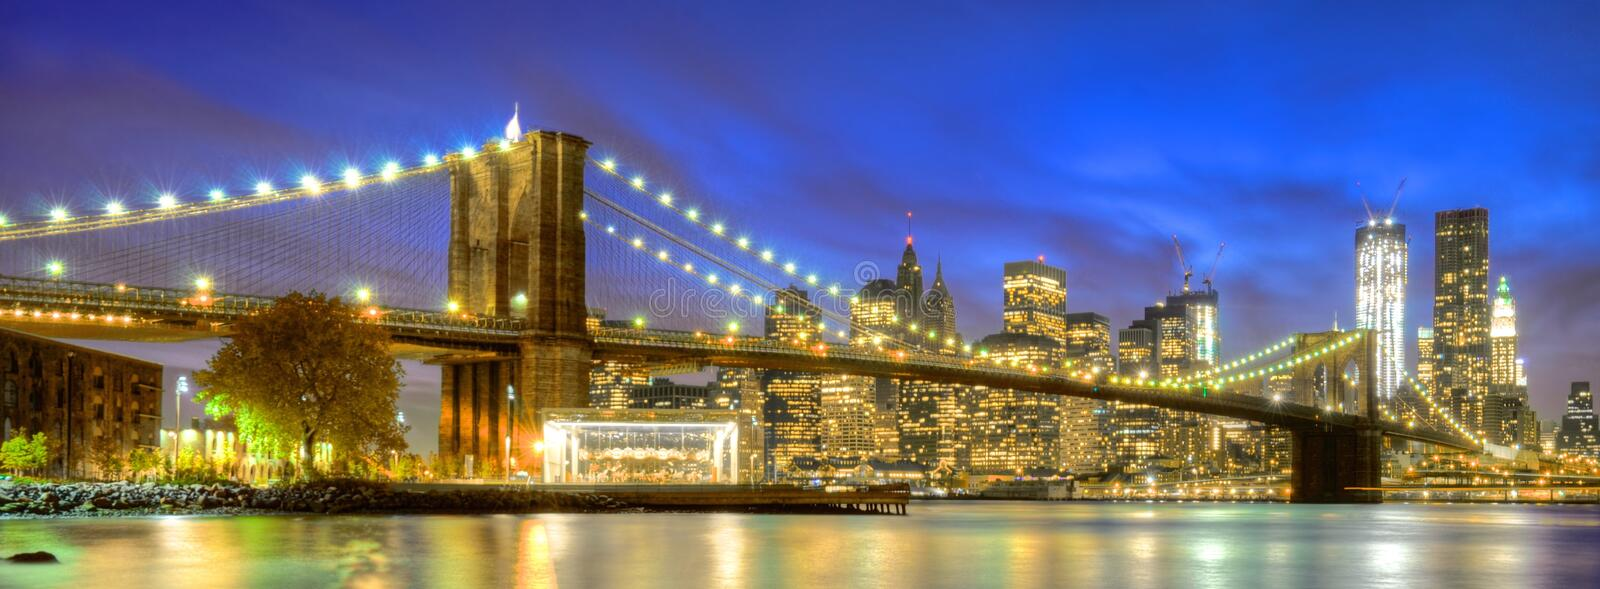 Nachtlichter in New York City stockbilder